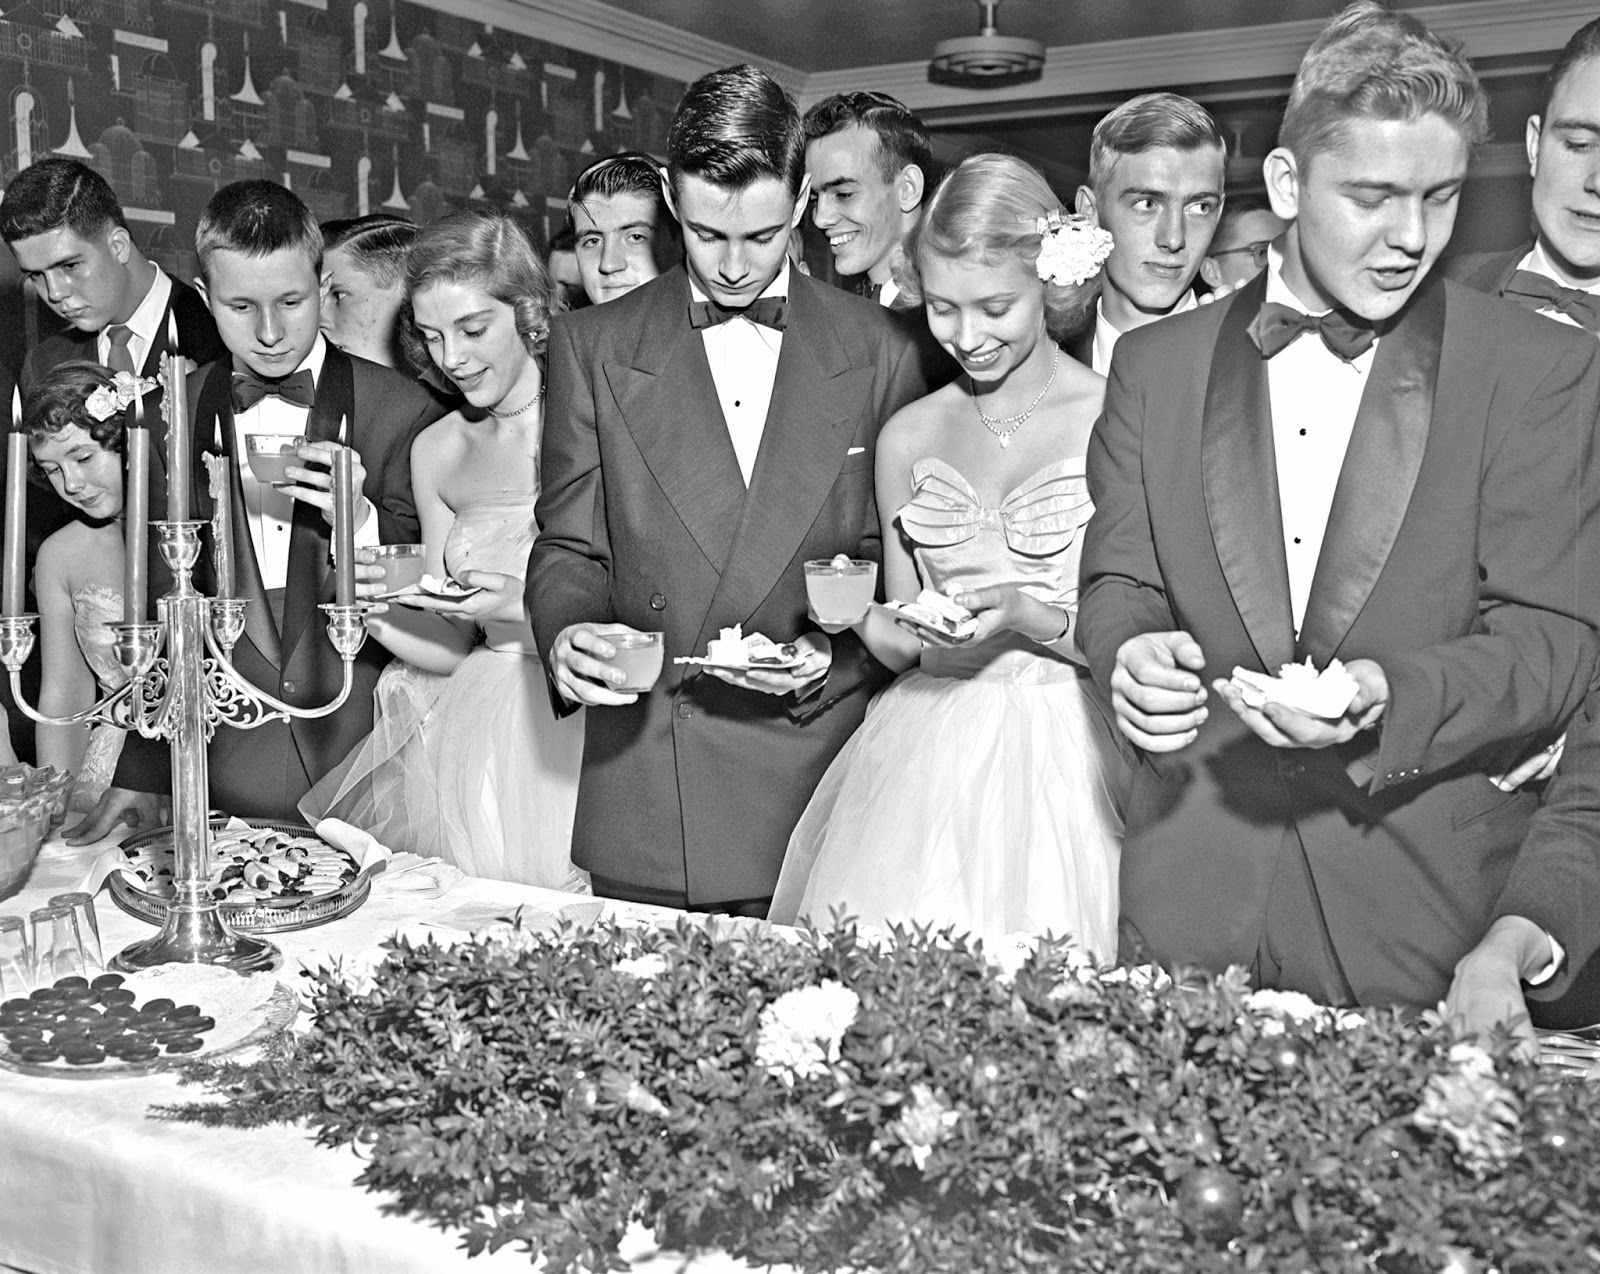 Lebus Christmas Party, 1952